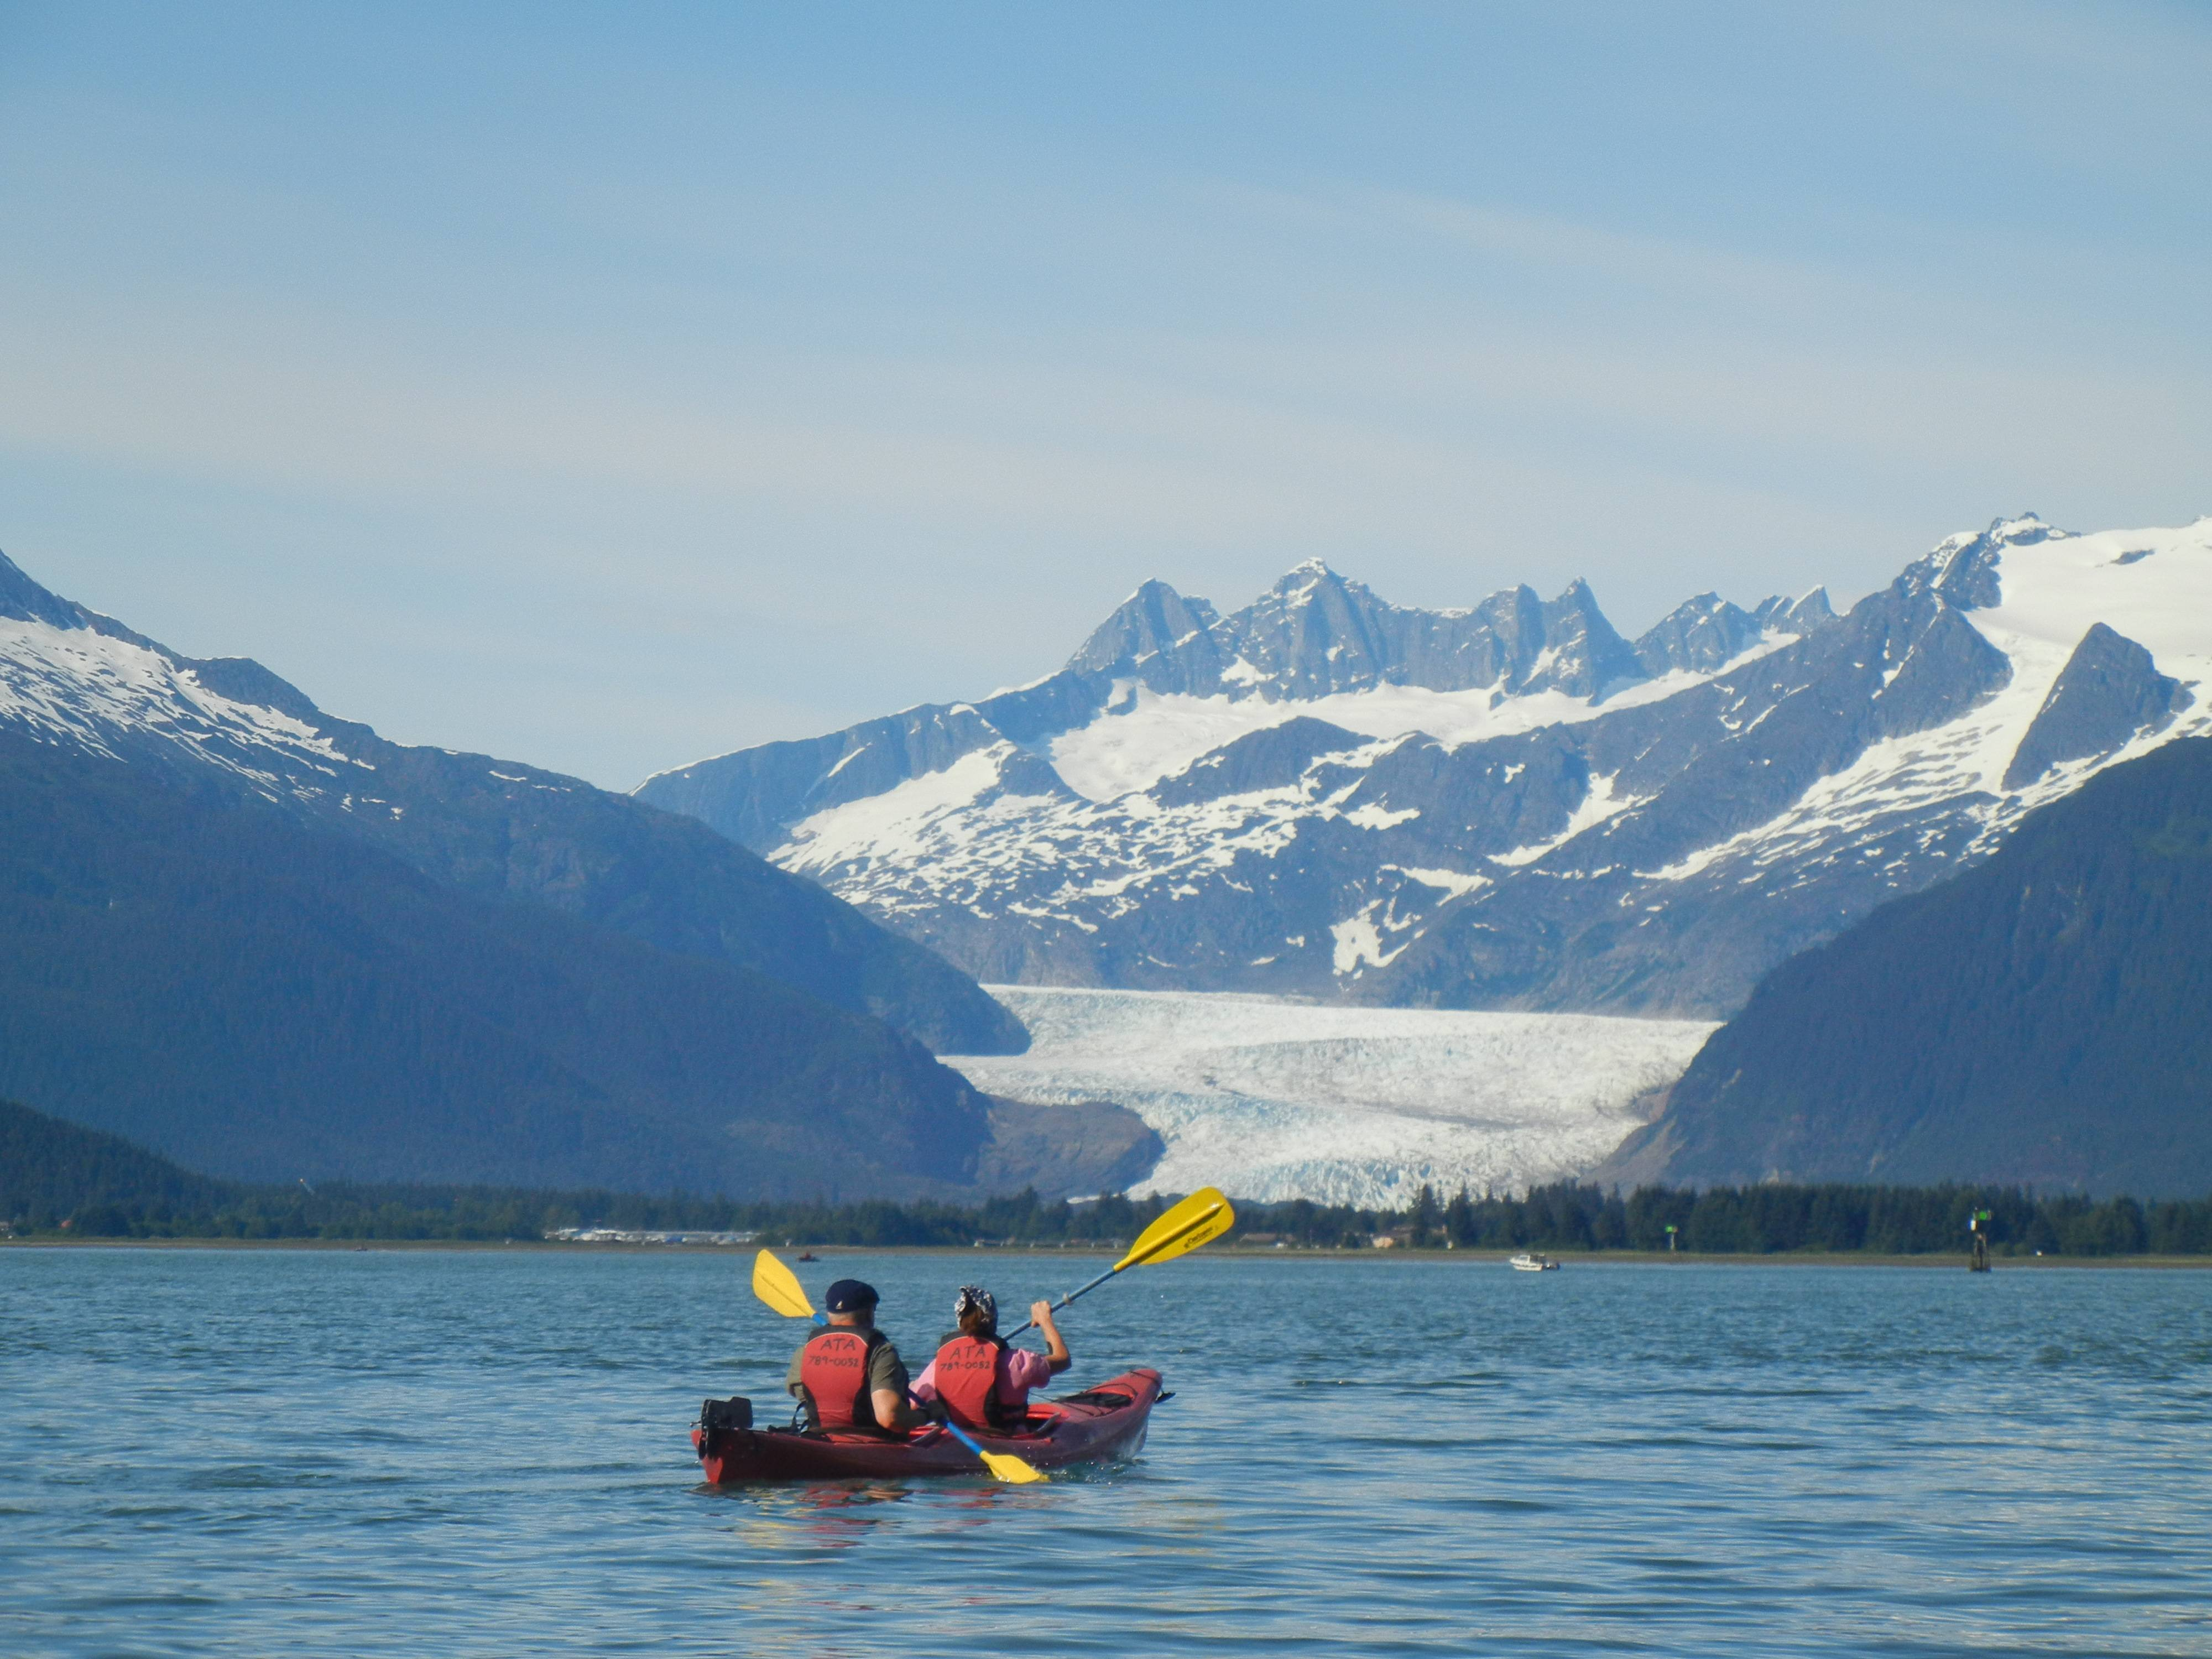 This picture was taken in Juneau Alaska last month. My husband and I were in Alaska celebrating our 25th Wedding Anniversary. We were on a Mendenhall Glacier Kayaking excursion